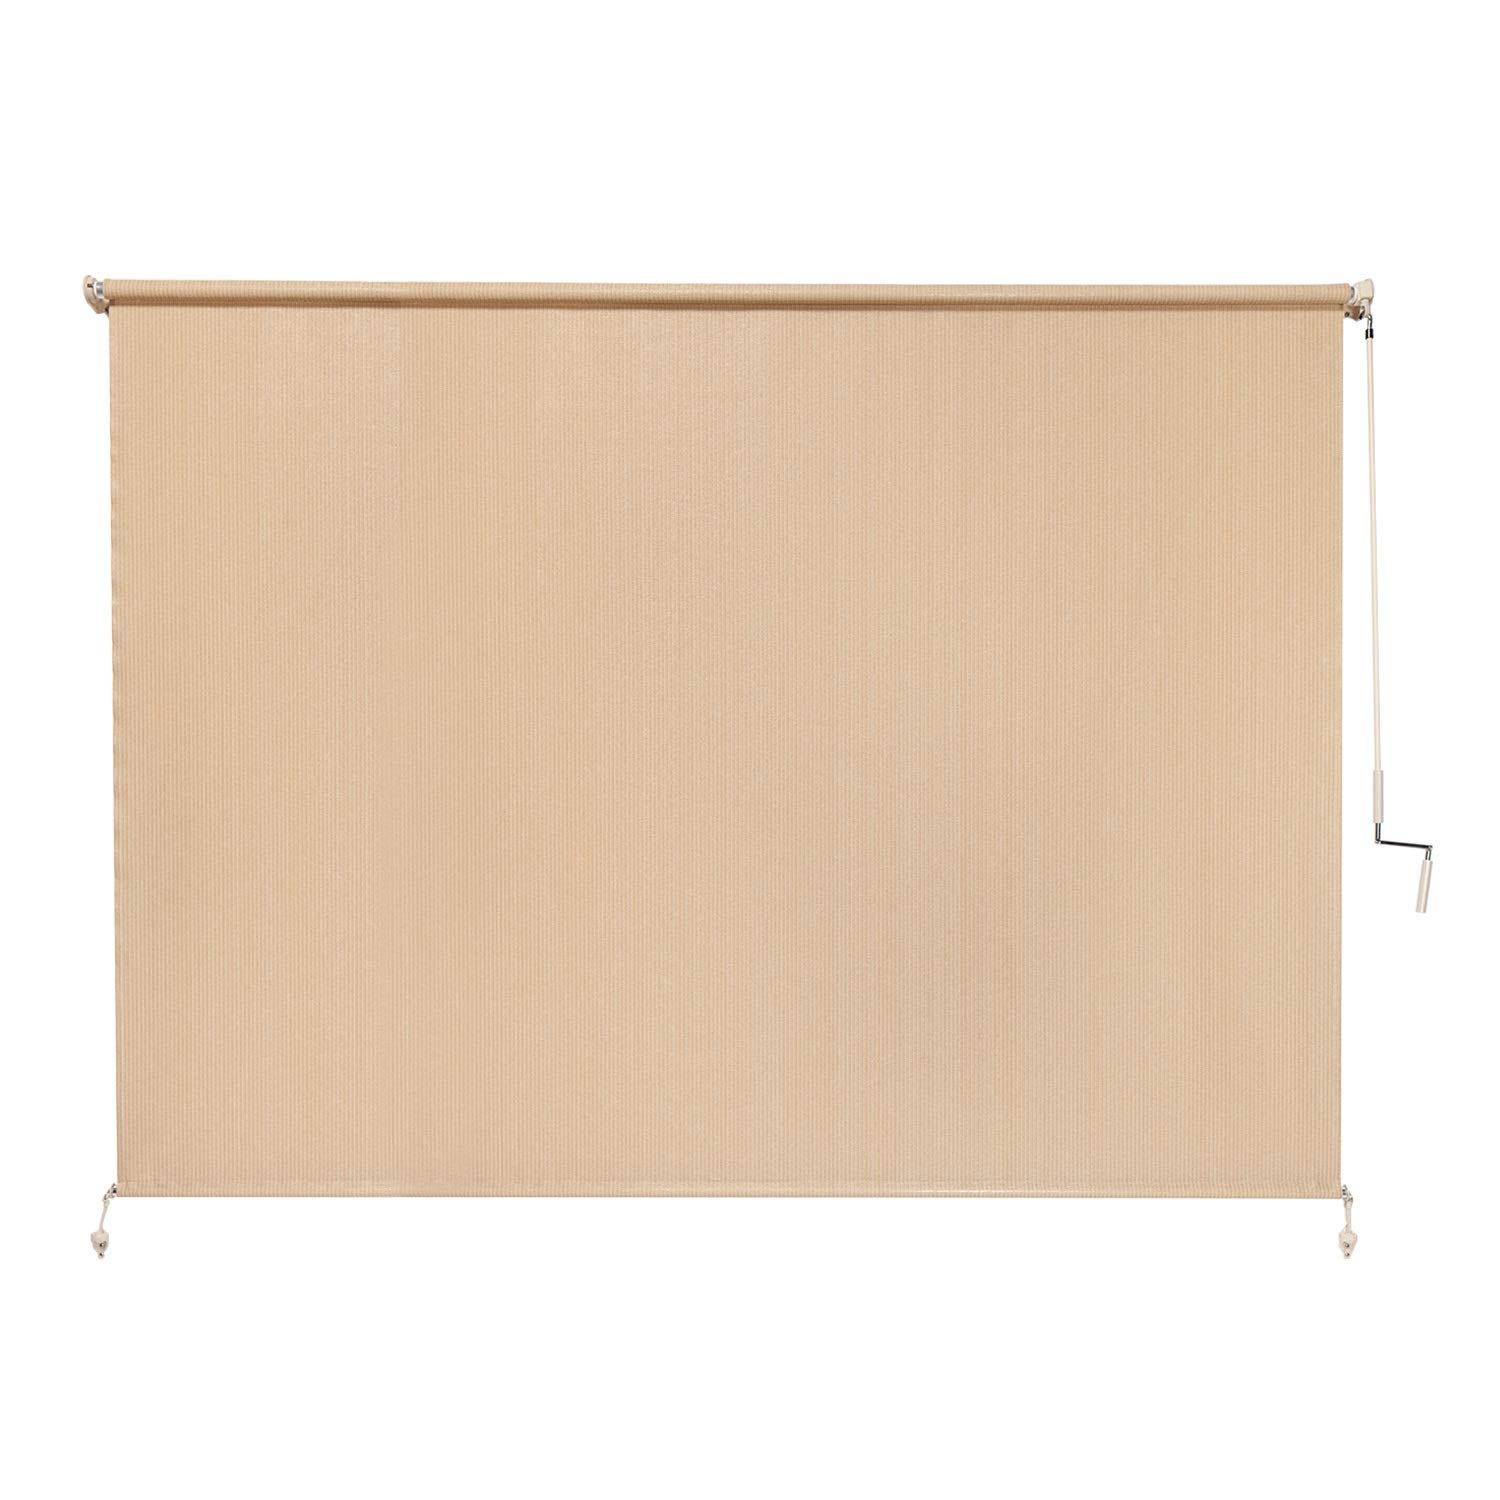 Coolaroo Exterior Roller Shade, Cordless Roller Shade with 90 UV Protection, No Valance, 8 W X 6 L , Southern Sunset